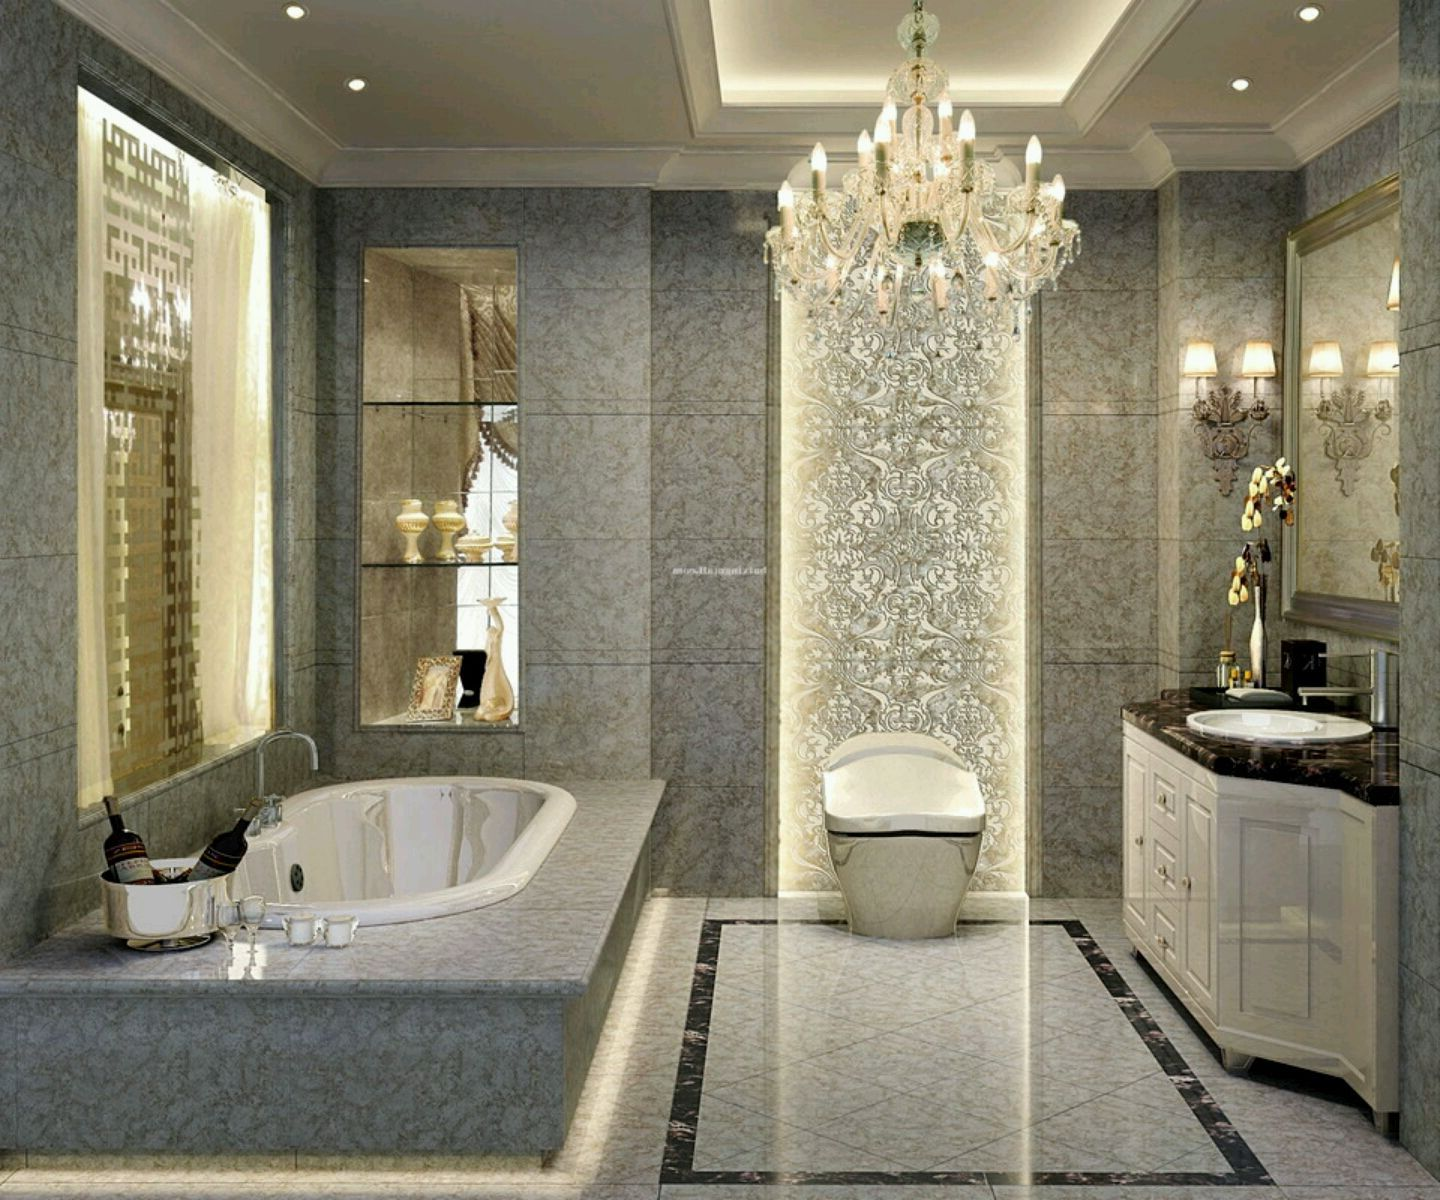 Bathroom Design Ideas 2014 extraordinary 10+ bathrooms design ideas pictures design